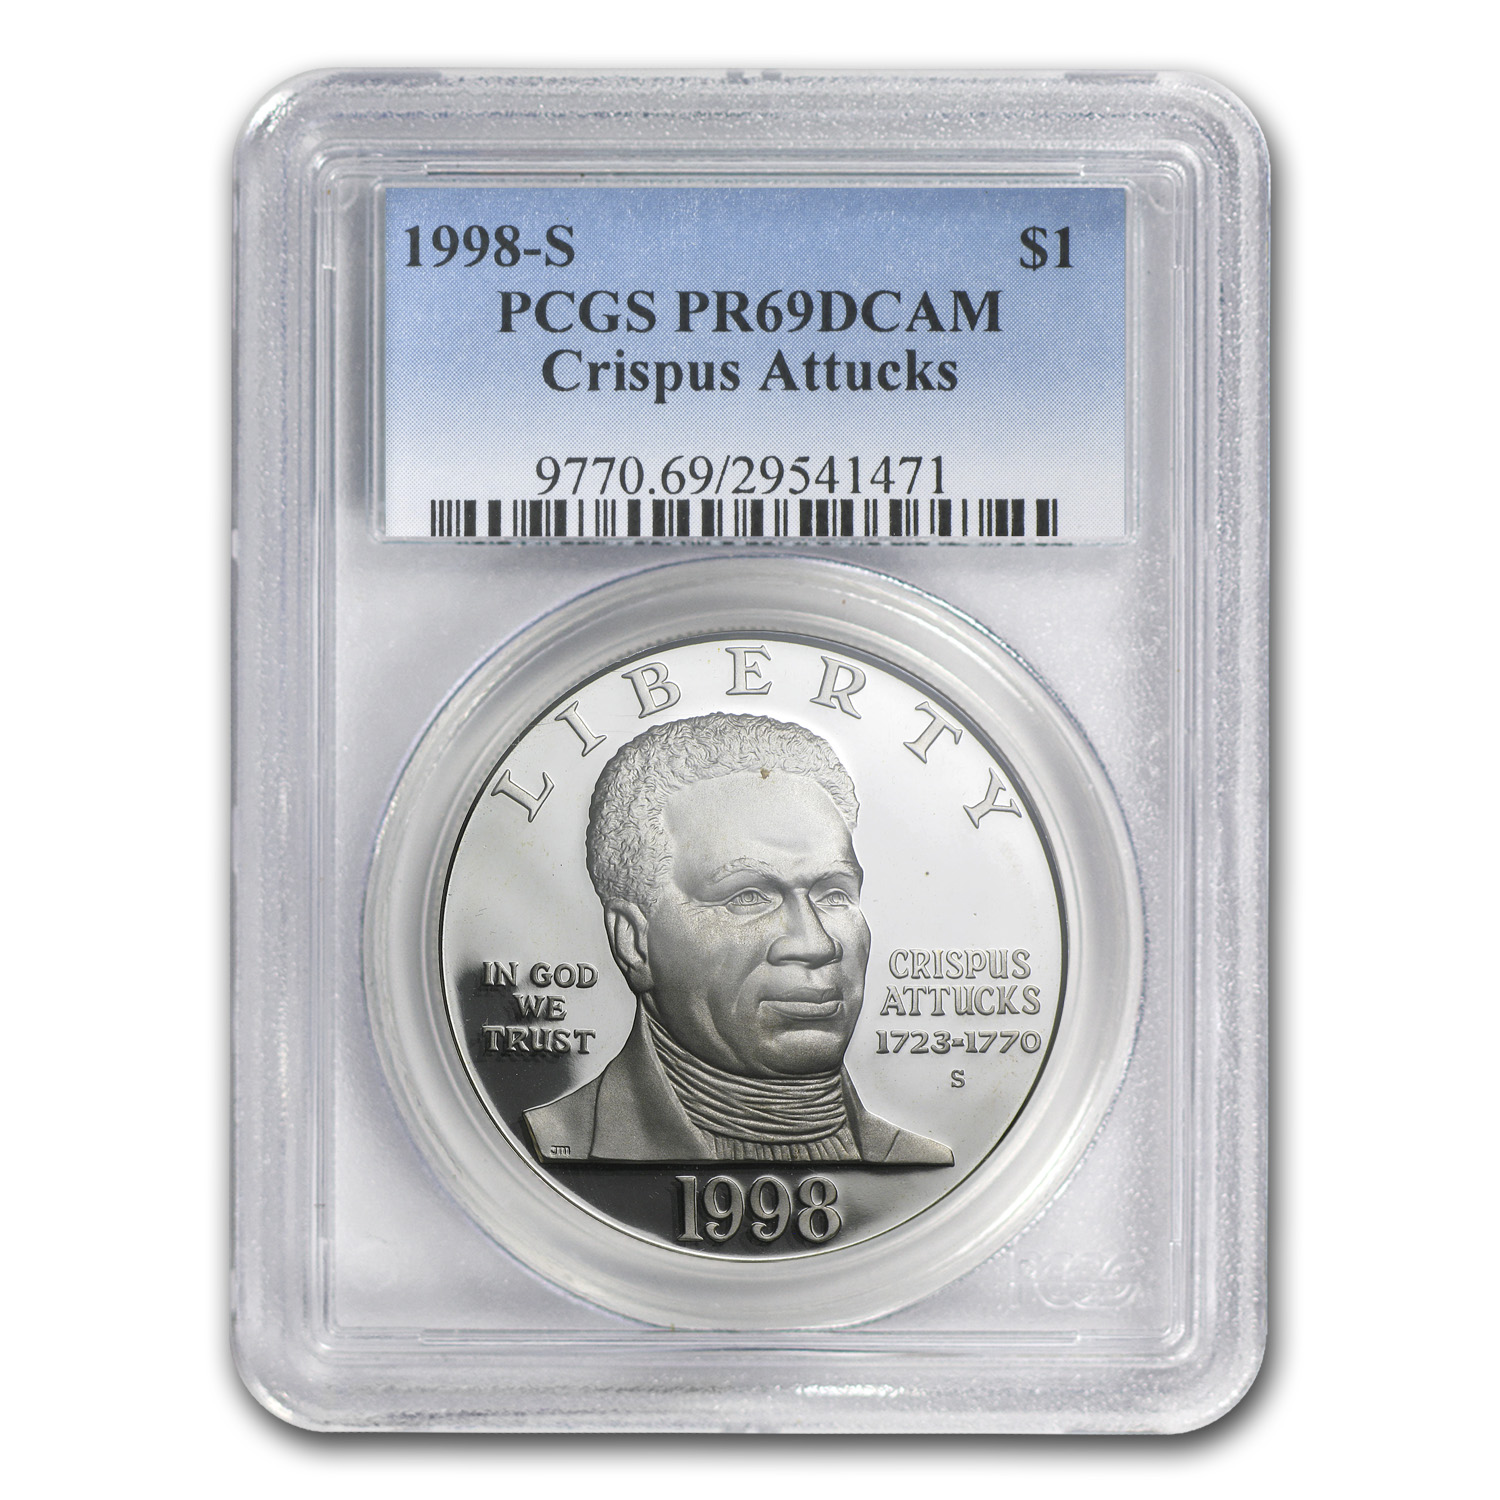 1998-S Black Patriots $1 Silver Commem PR-69 PCGS